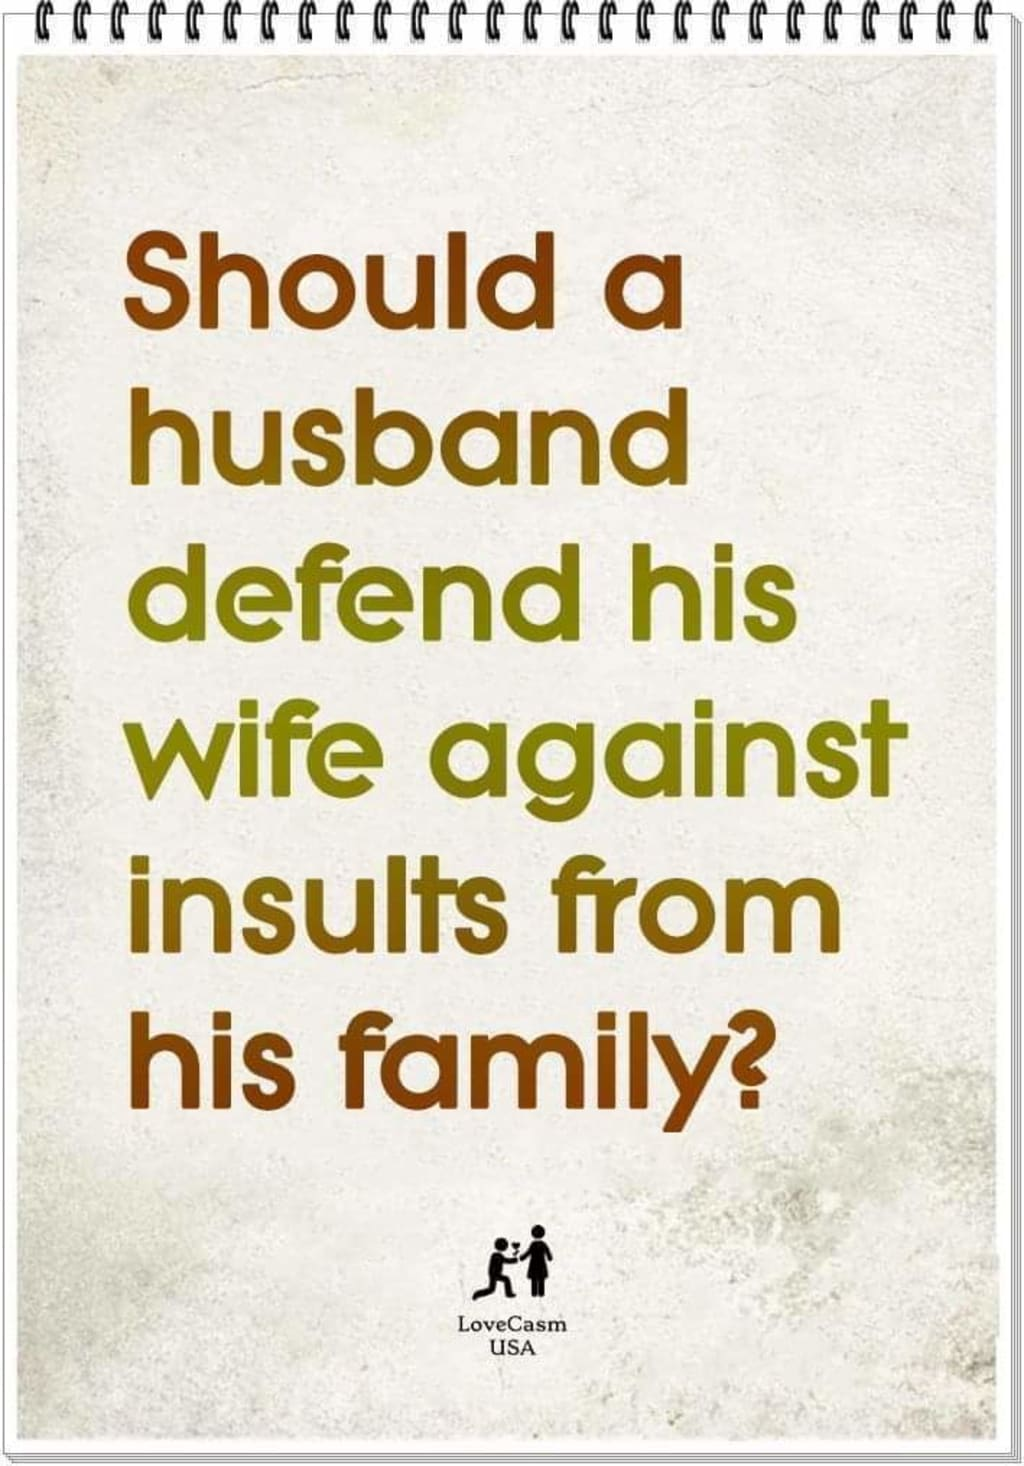 Always Defend Your Wife As Your Marriage Depends On It